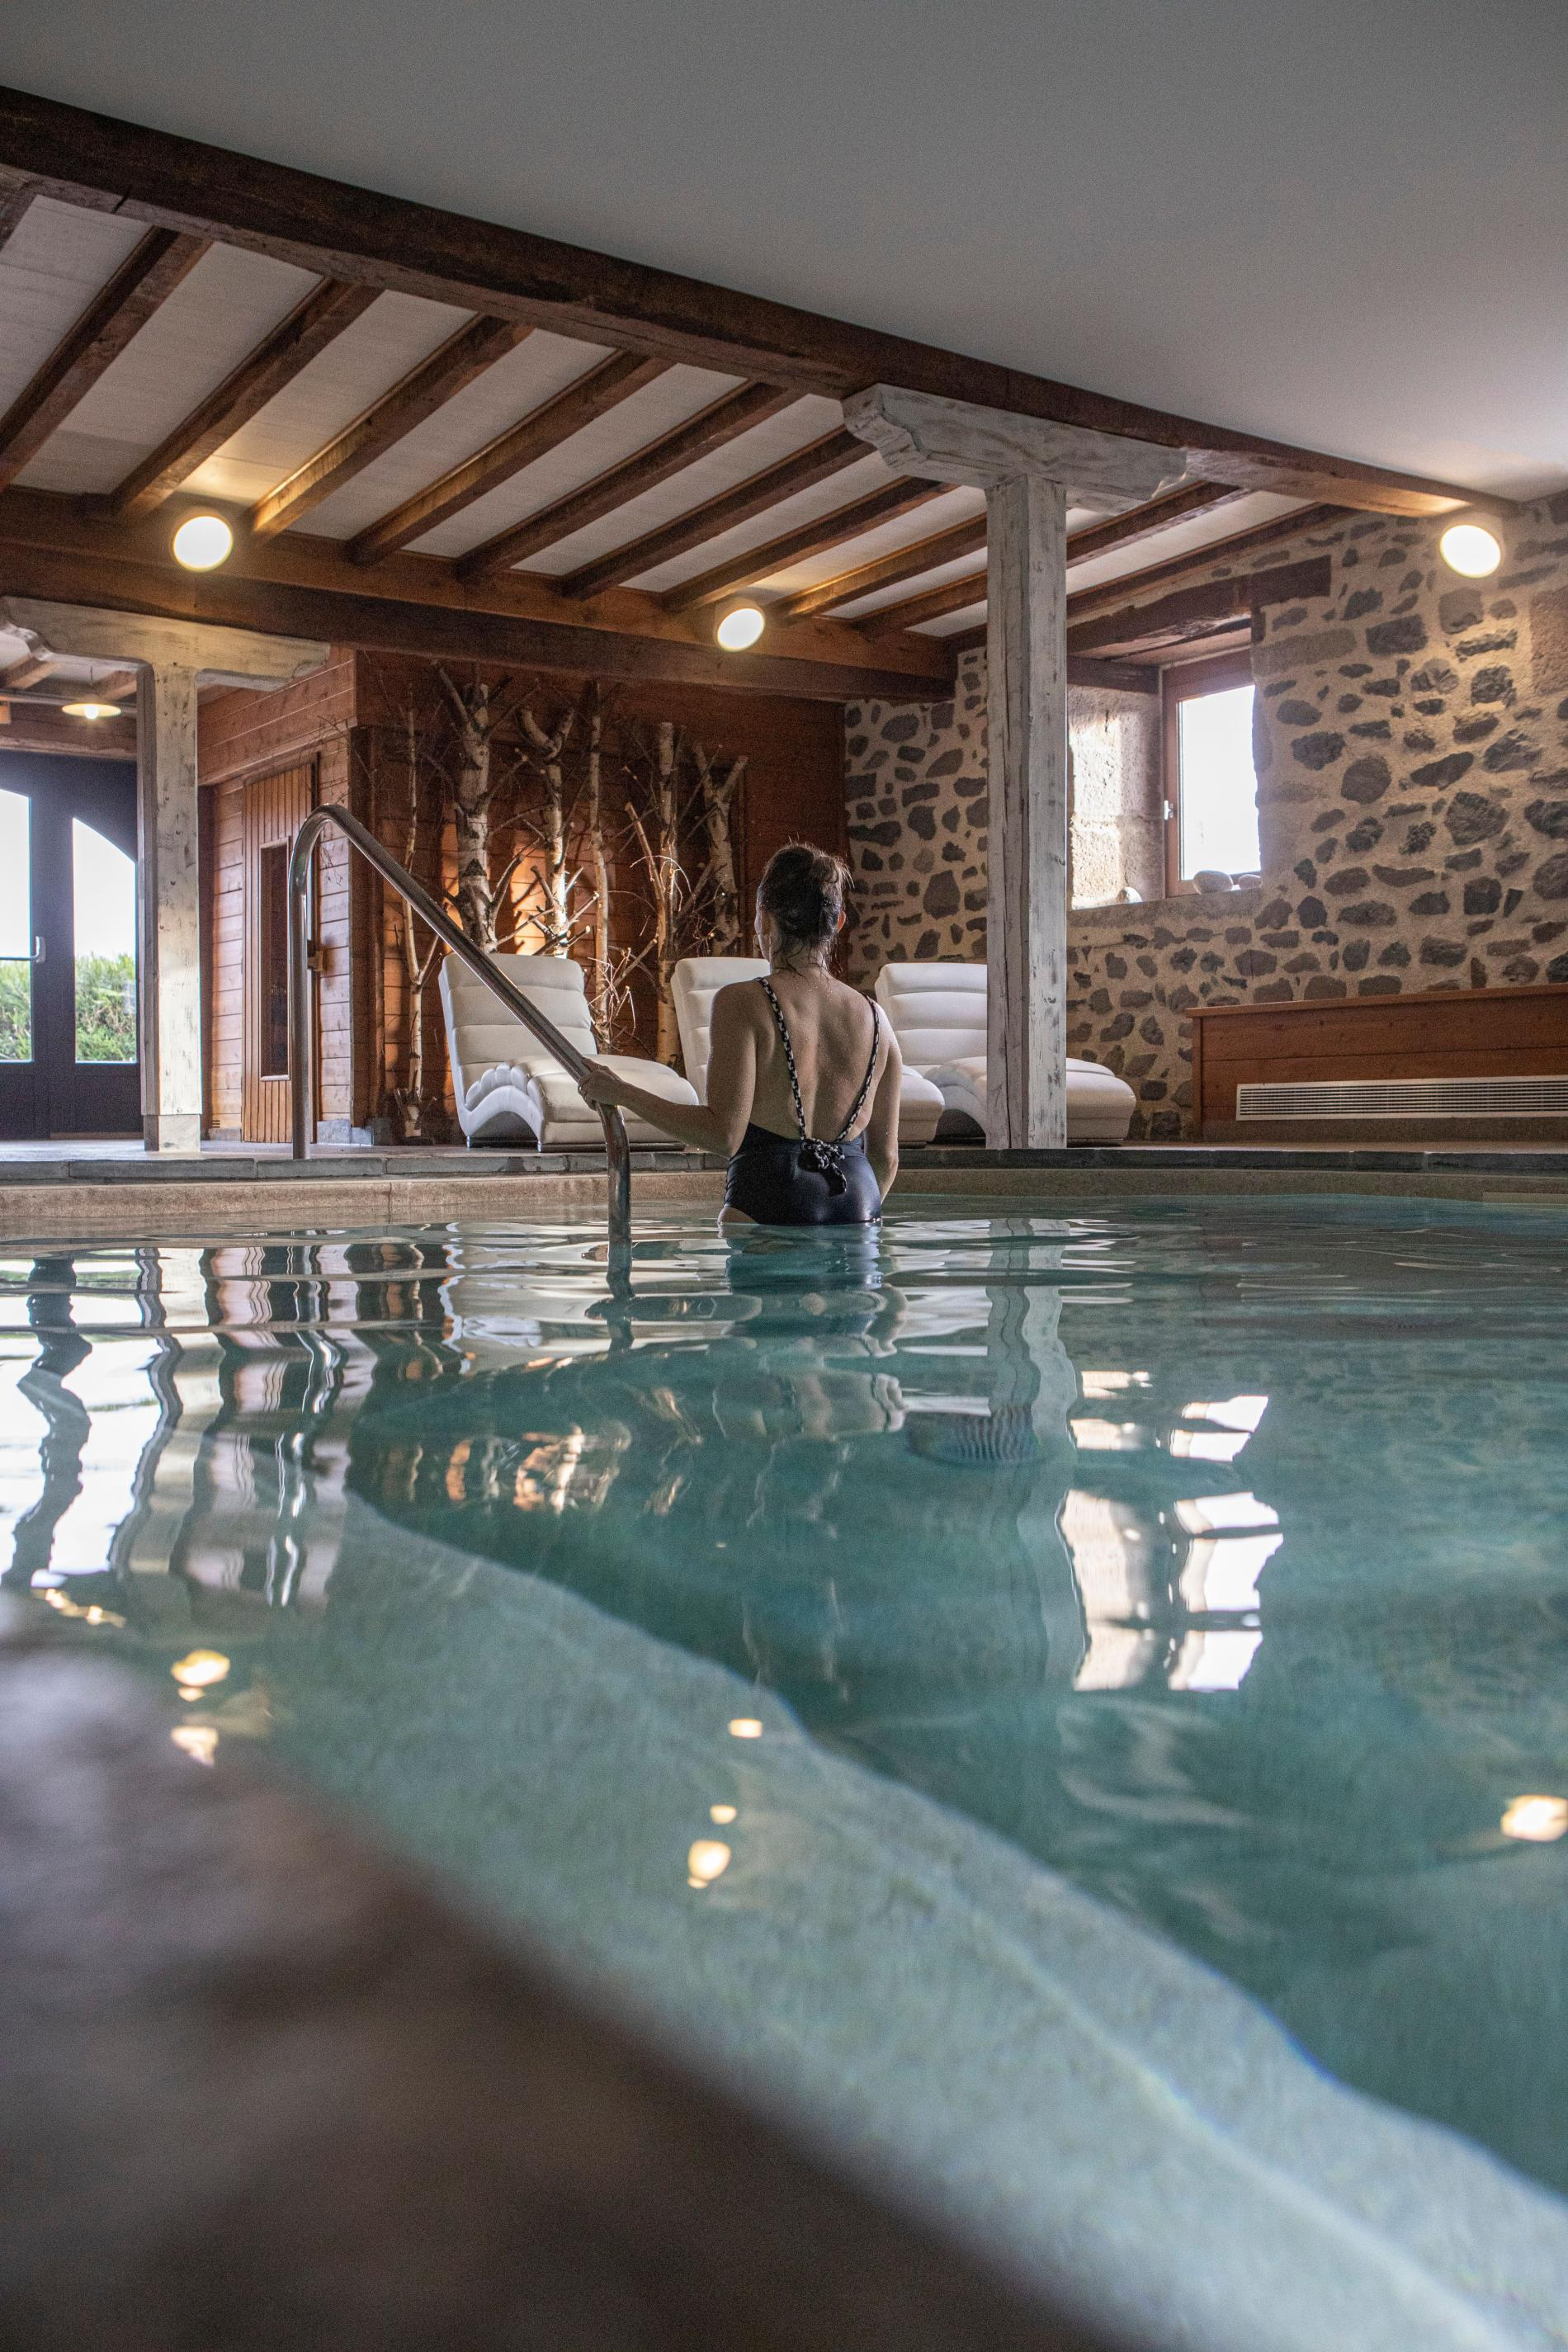 Wellness barn - Fleurs de Montagne SPA and swimming pool, Cantal